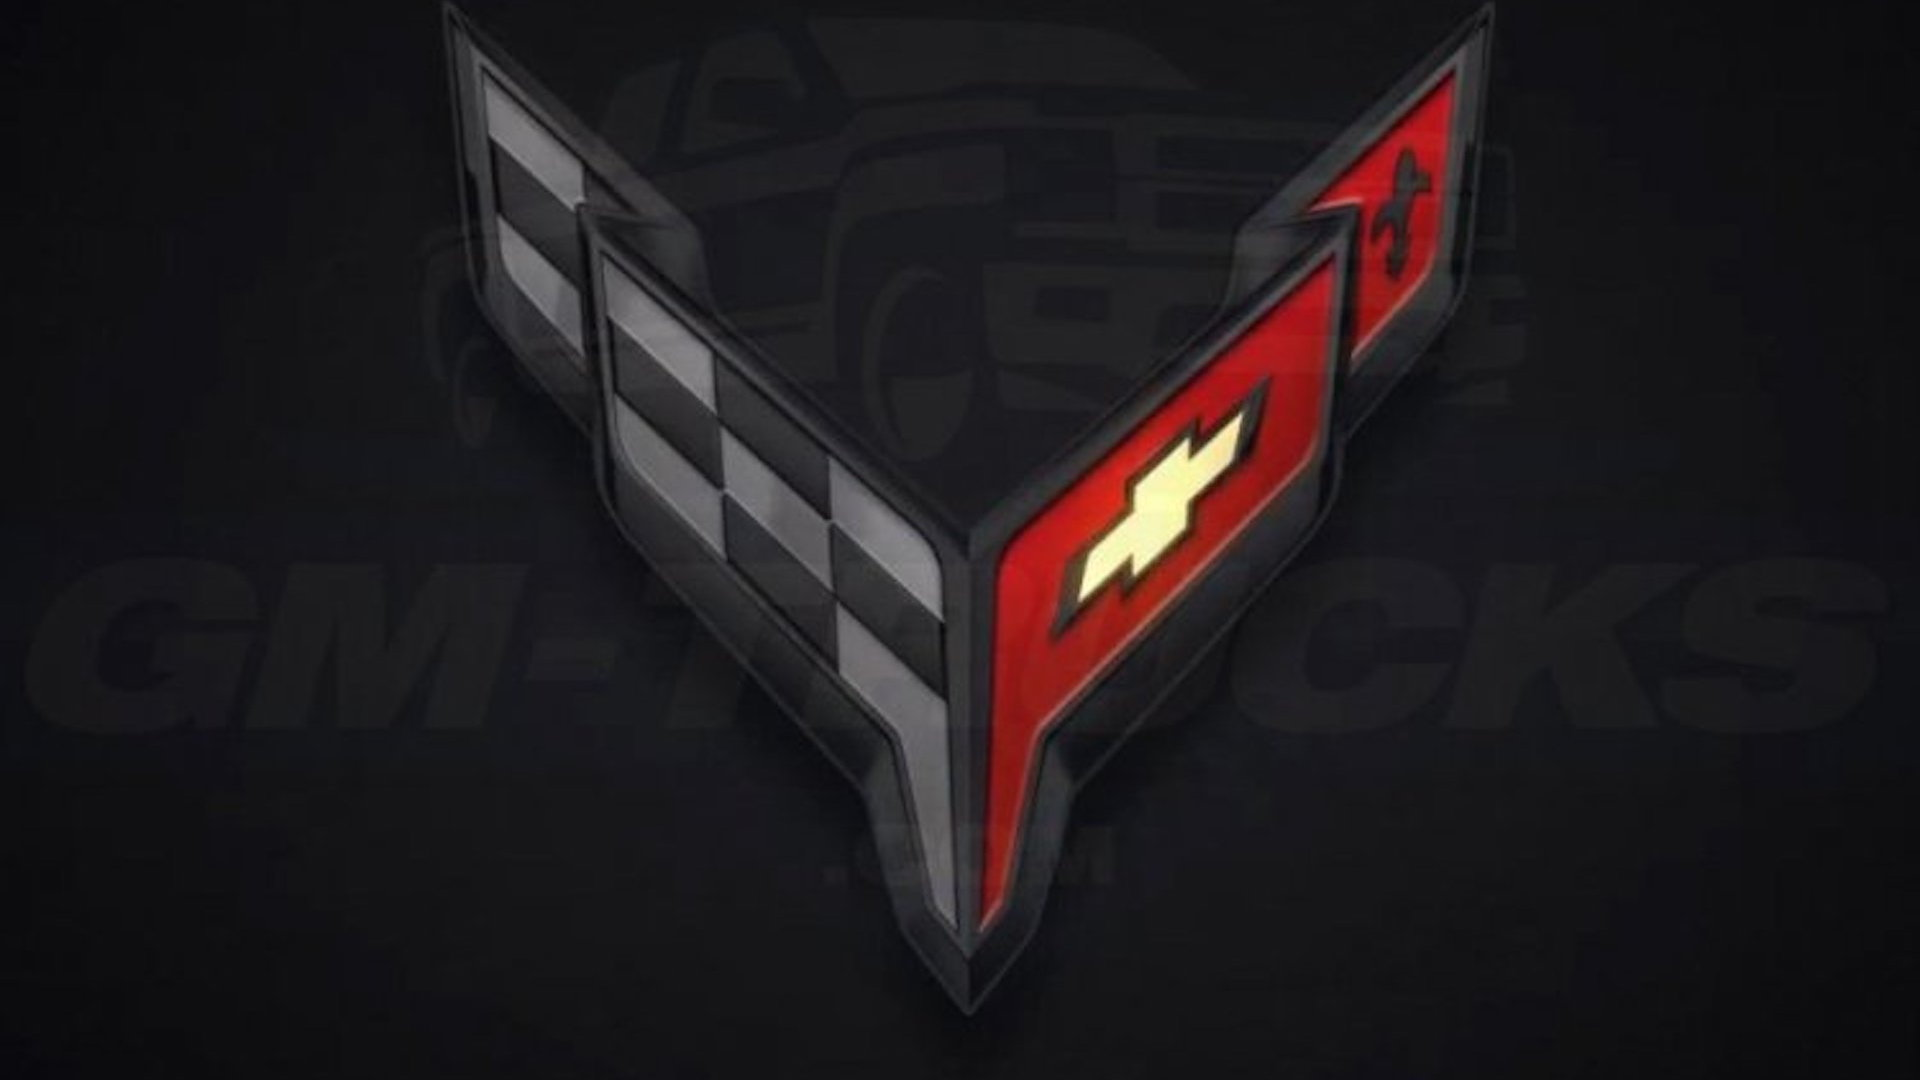 2020 Chevrolet C8 Corvette logos via GM-Trucks.com